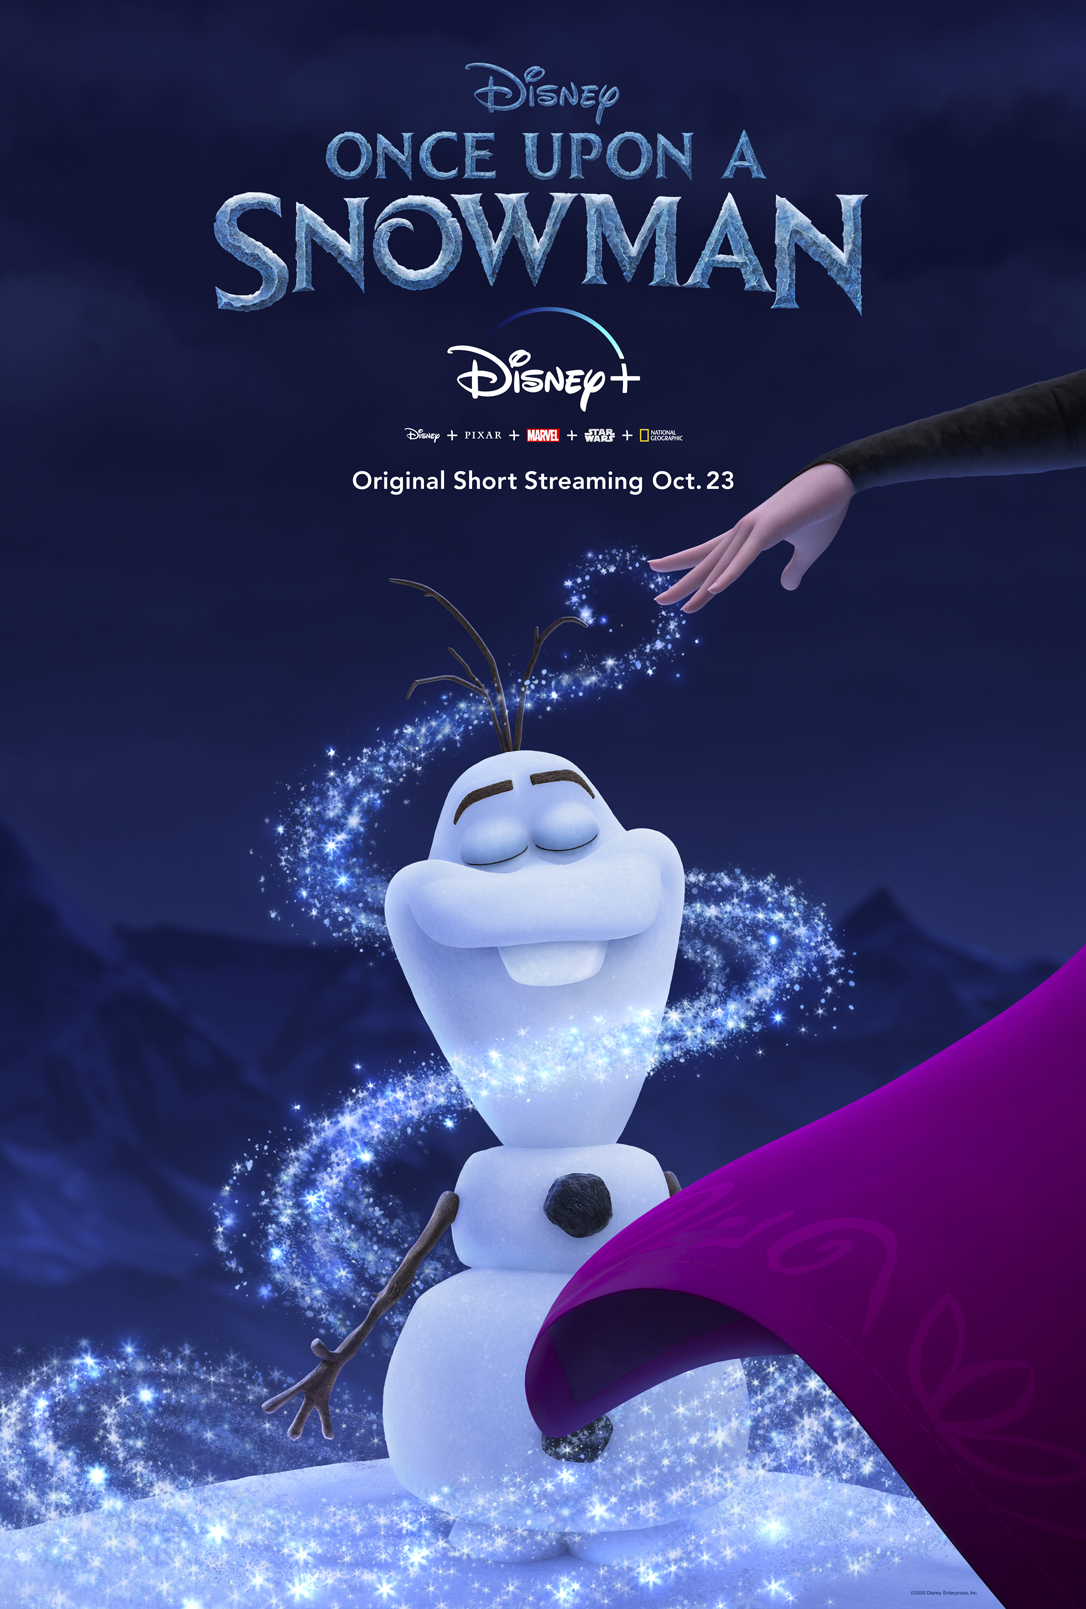 Once Upon a Snowman – Coming to Disney+